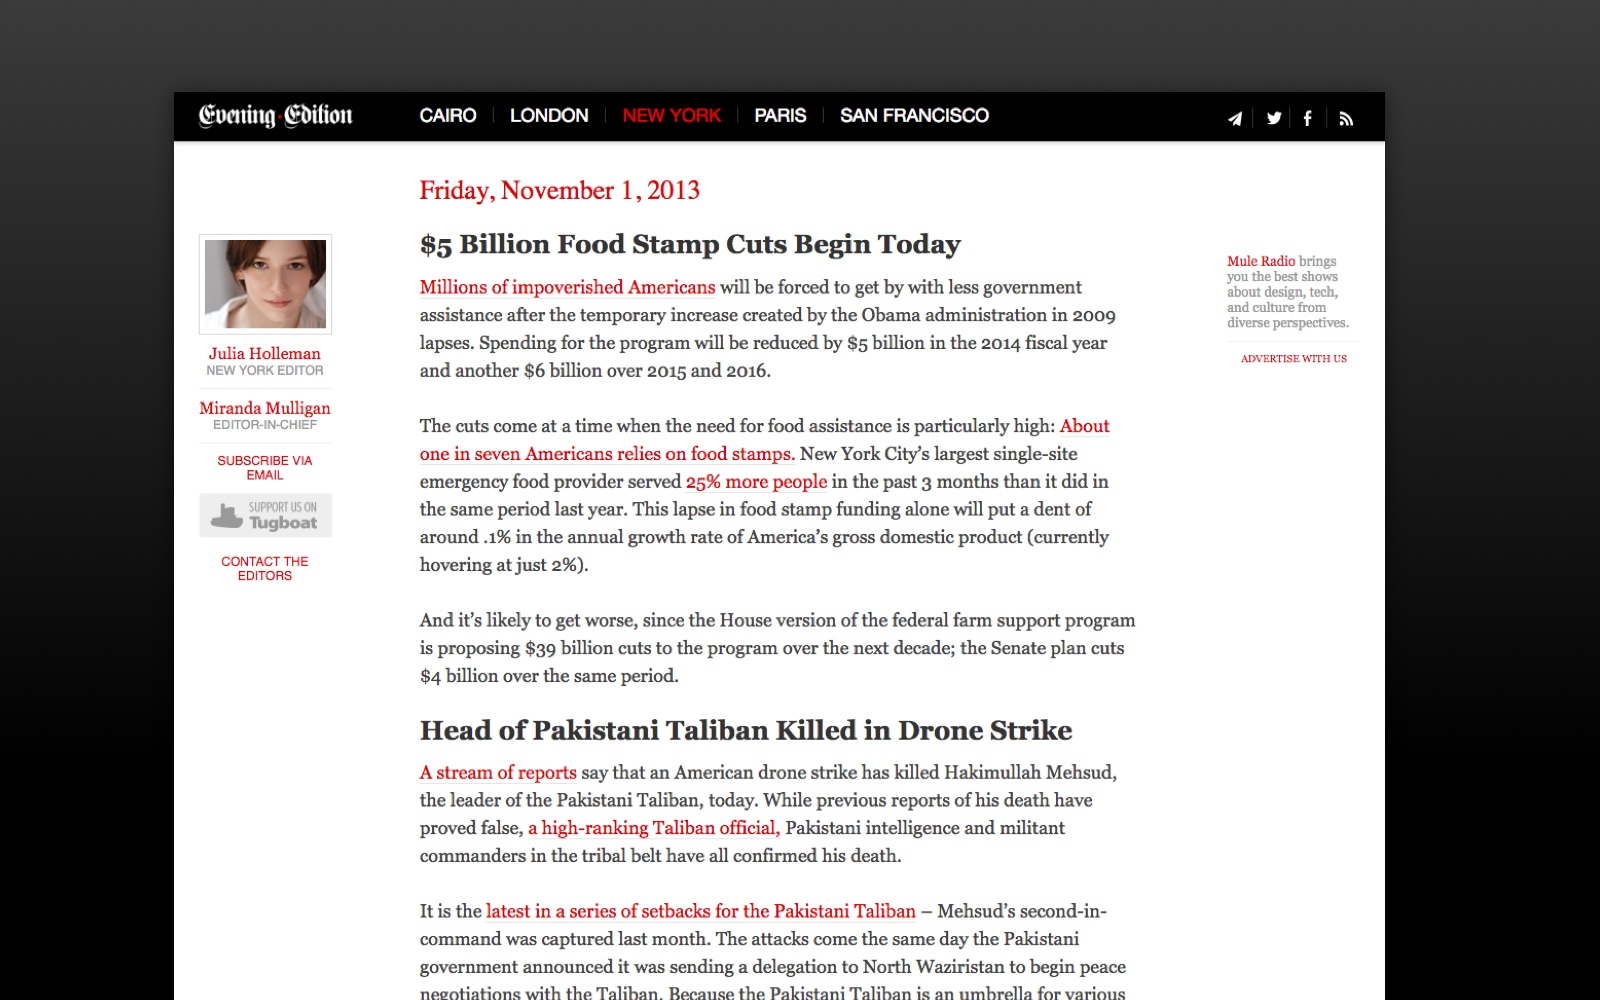 An example of an individual daily edition on the web